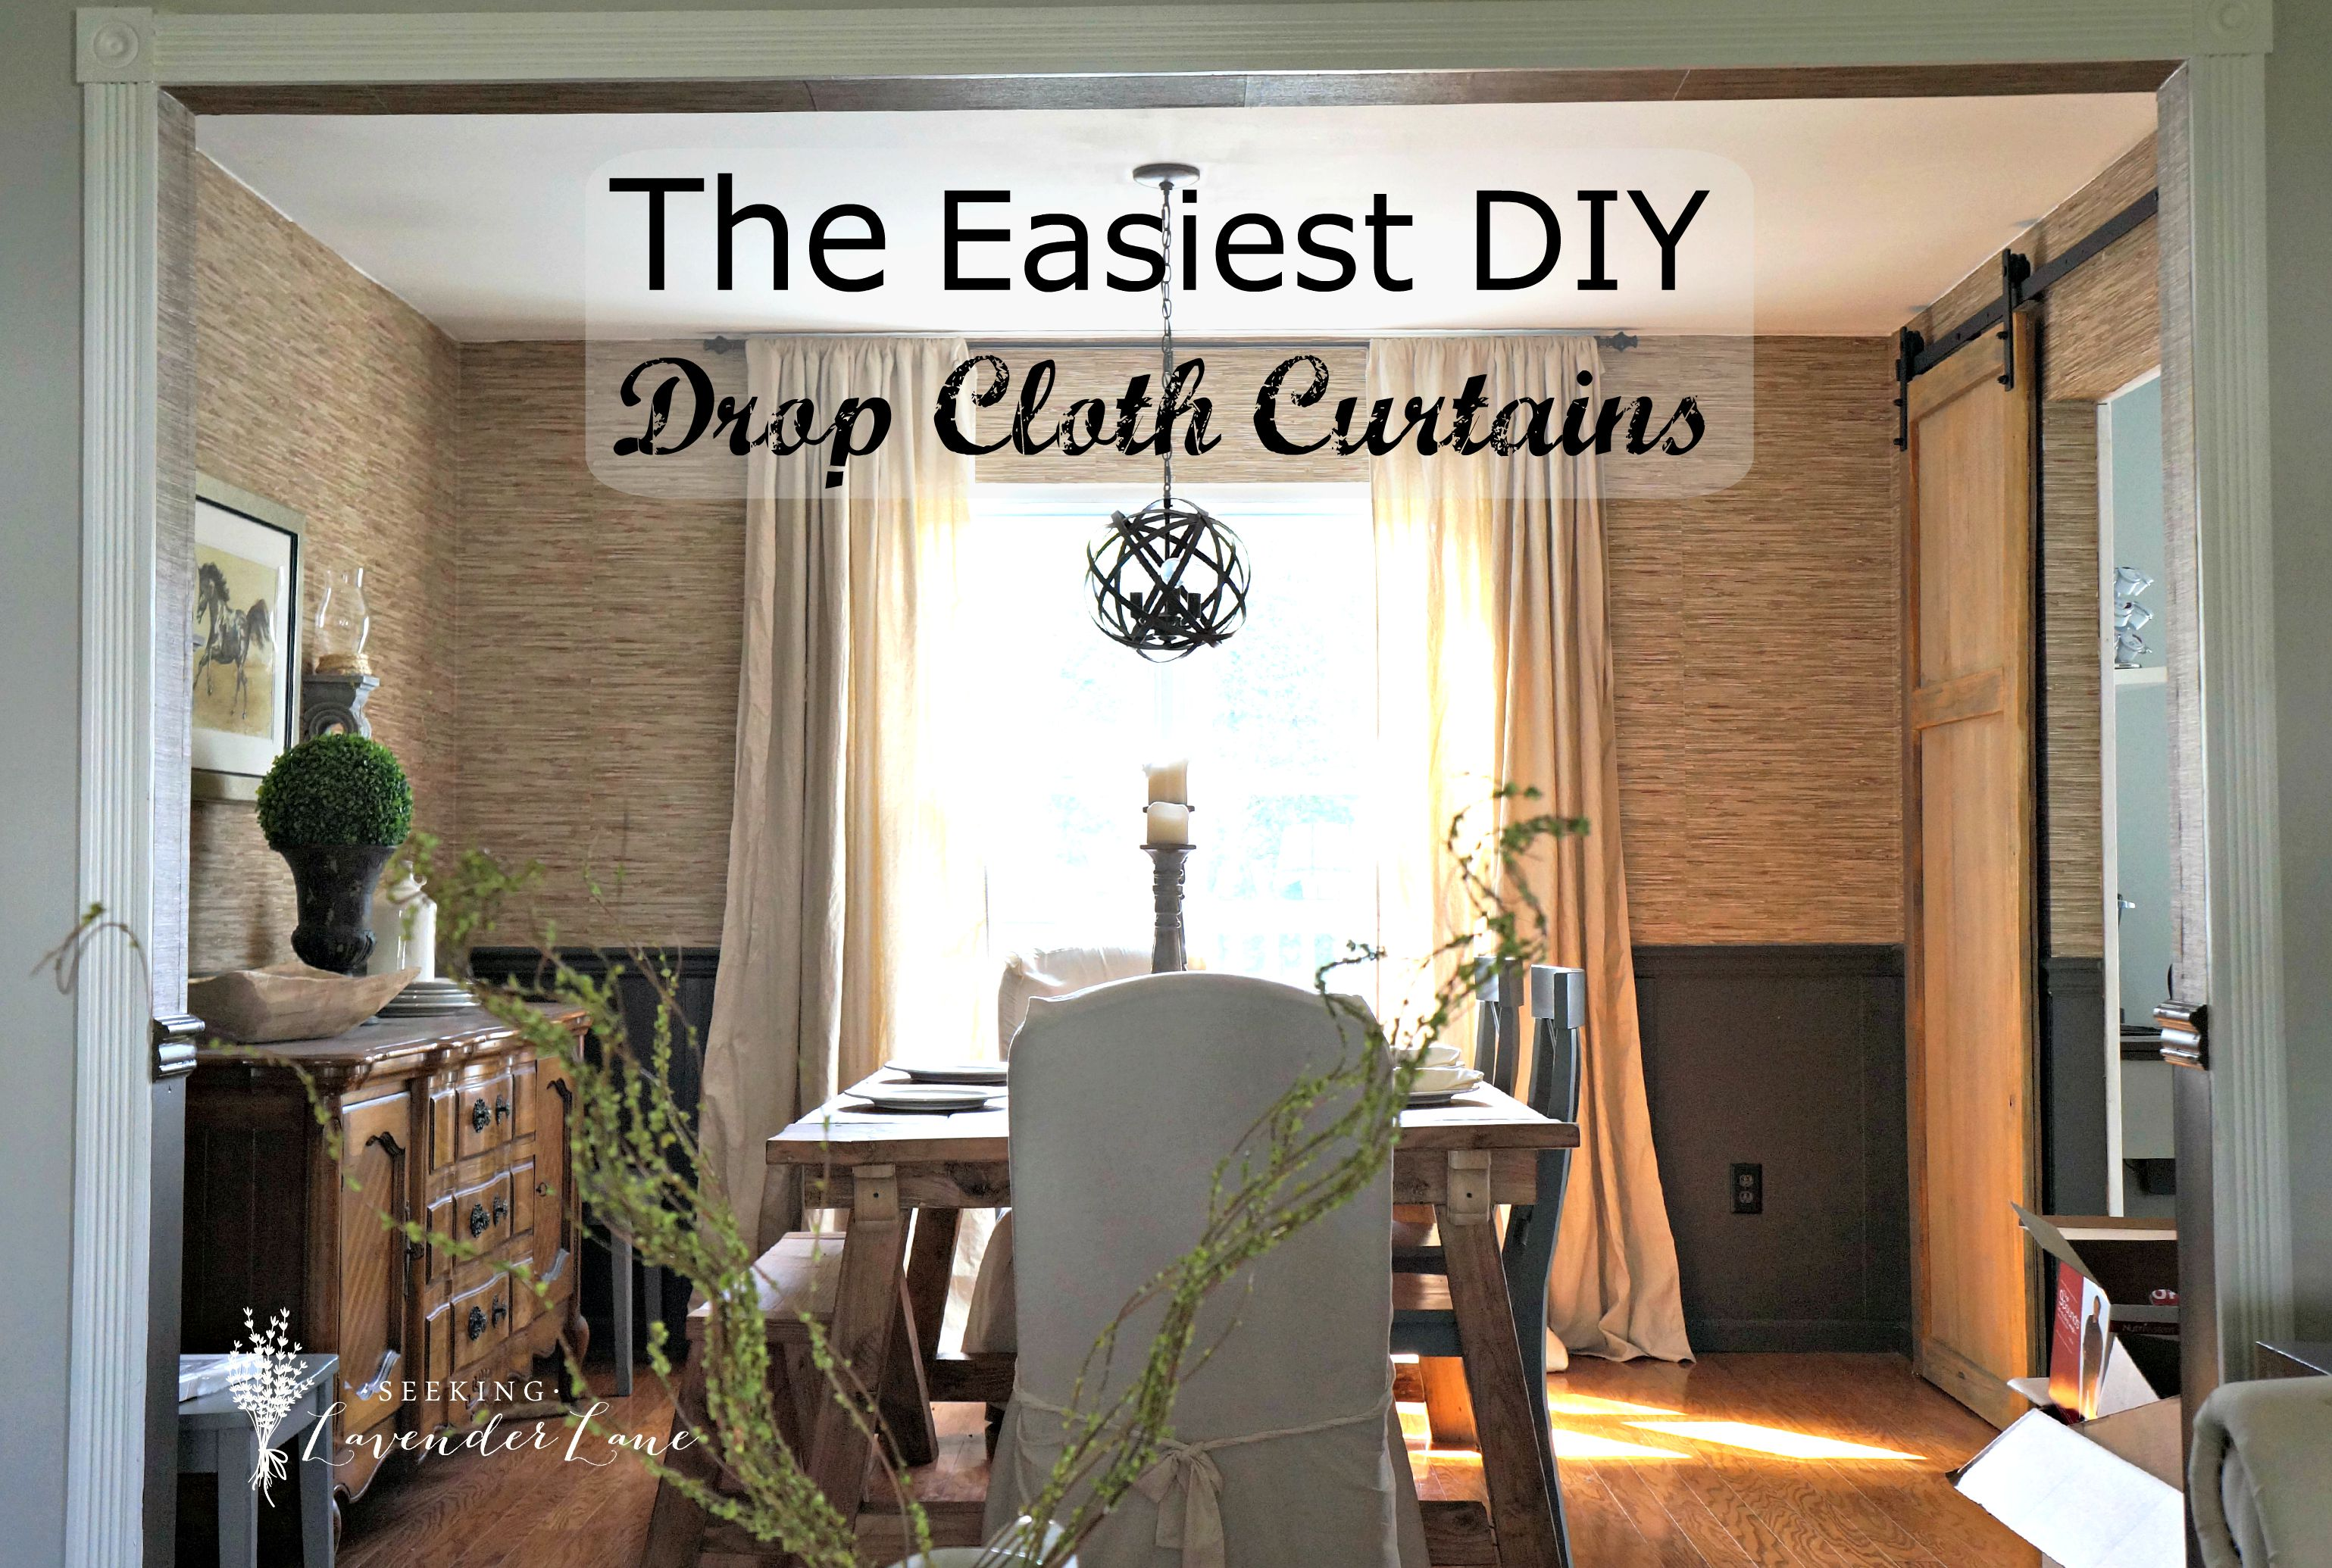 Cheap Stylish Curtains Cheap Home Decor Easiest Diy Drop Cloth Window Treatments